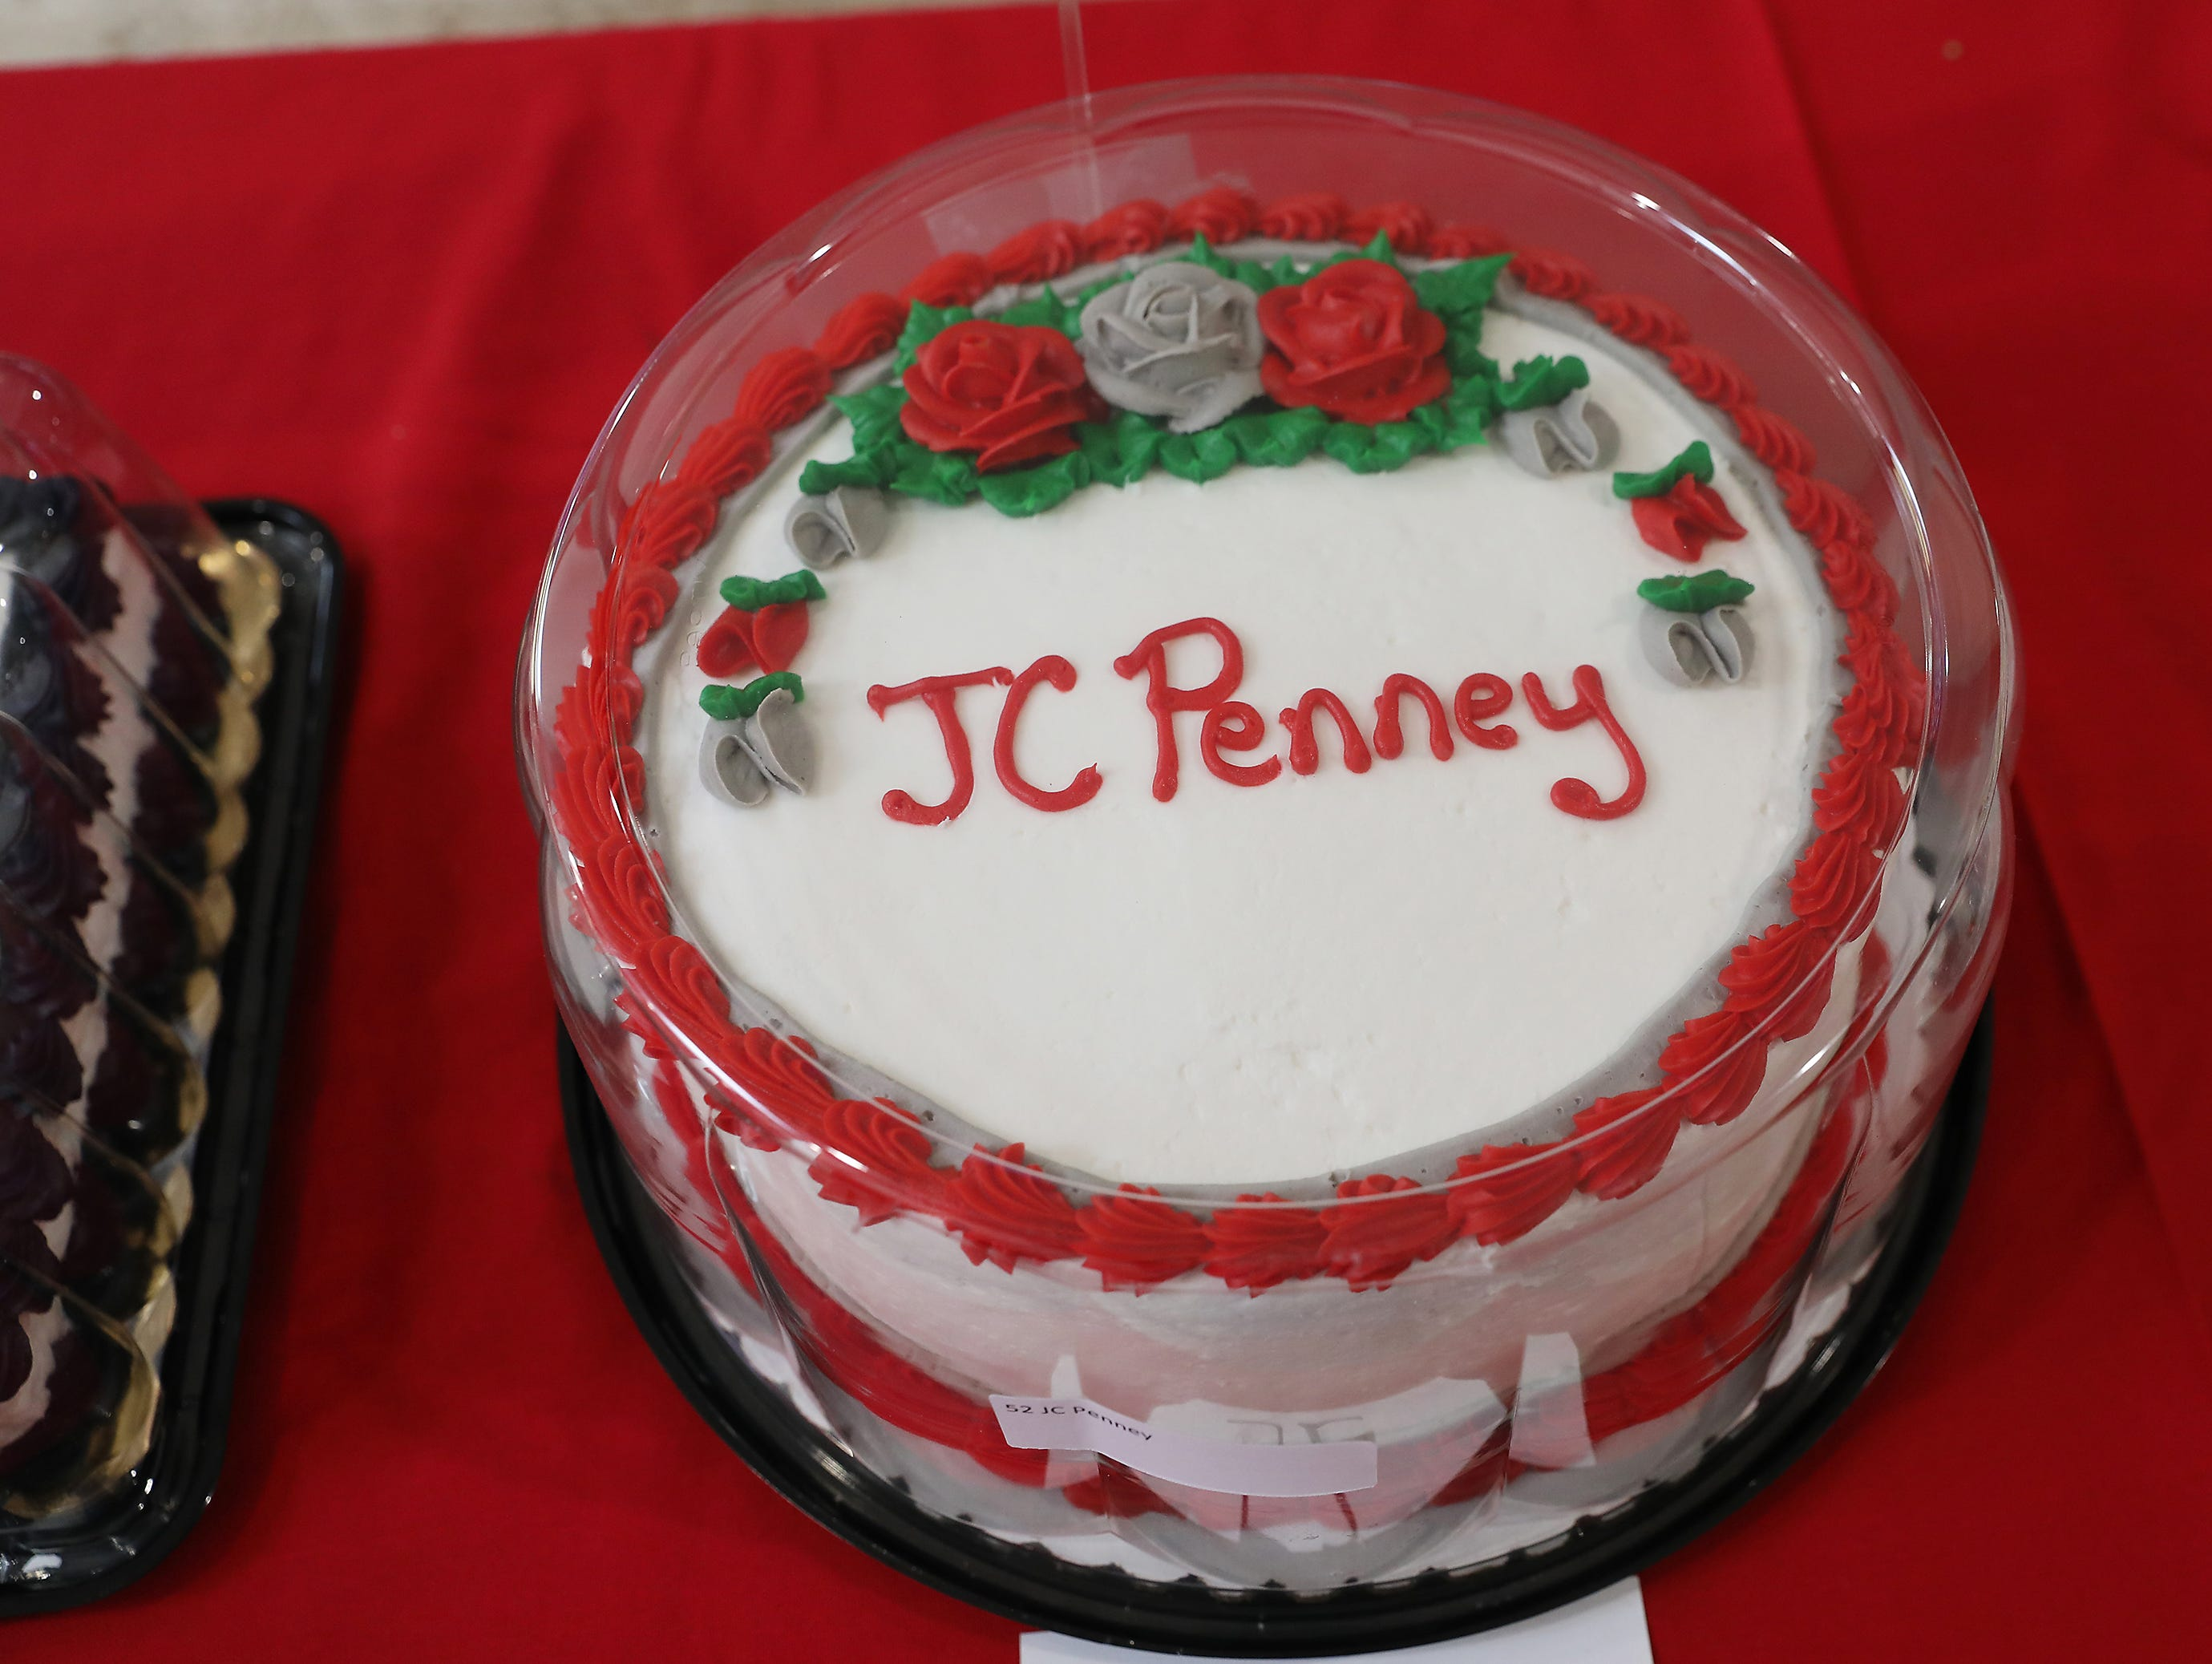 10:15 A.M. Thursday cake 52 JC Penney - Ohio State caps, drinking glasses, 3 LEGO sets; $200